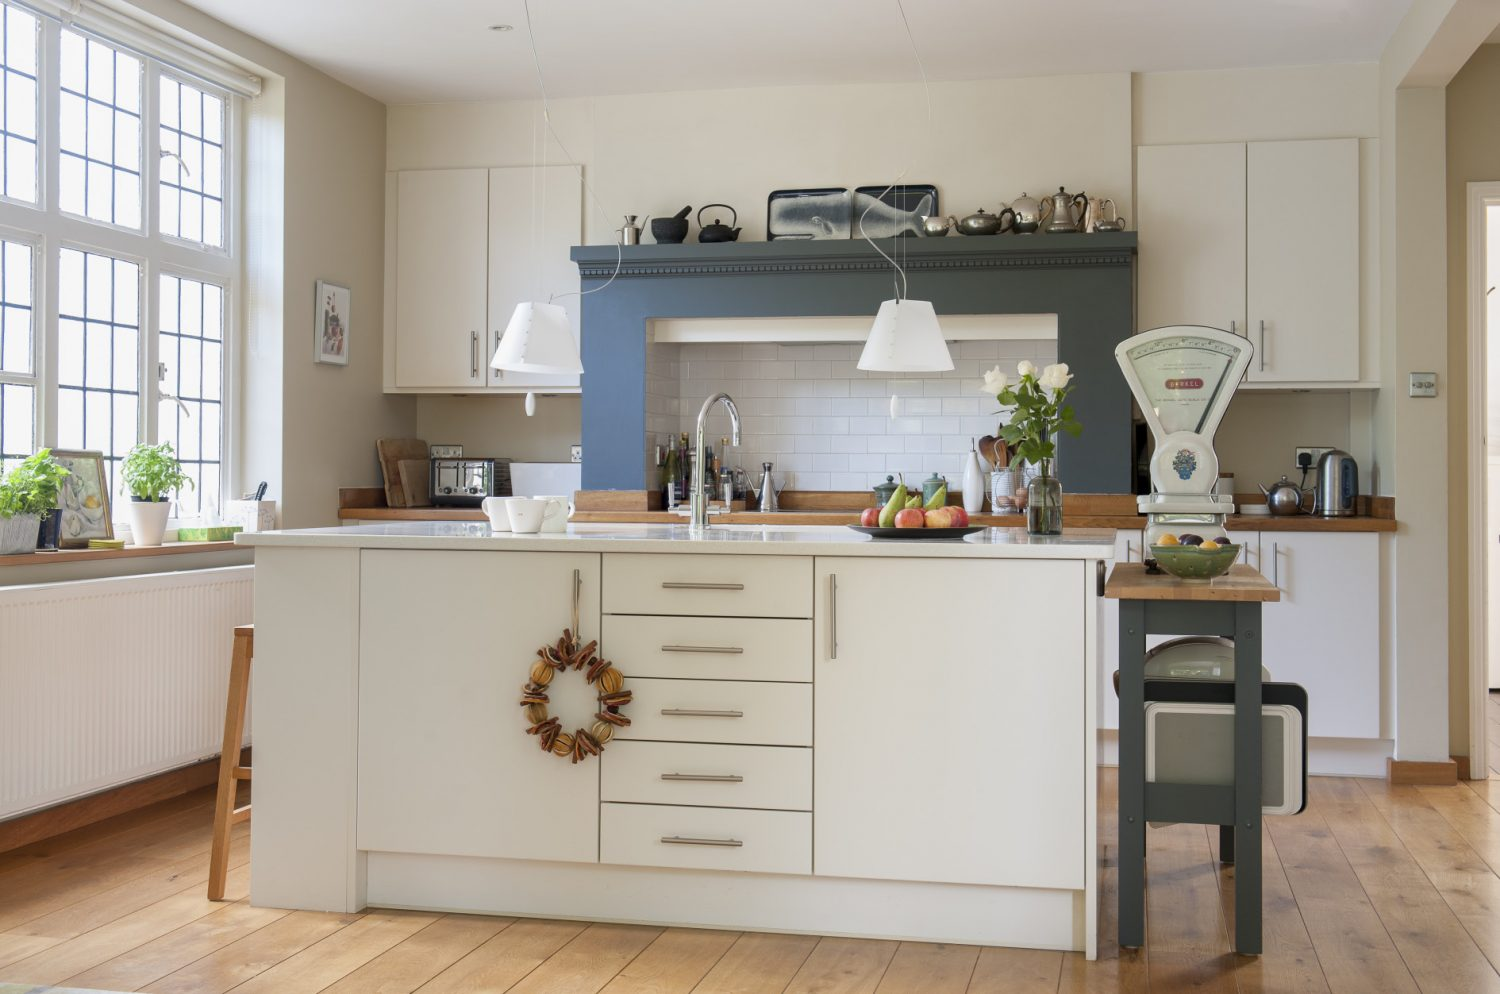 The kitchen is dominated by a free-standing unit painted in Farrow & Ball Slipper White. Featuring big and bold is a magnificent set of scales